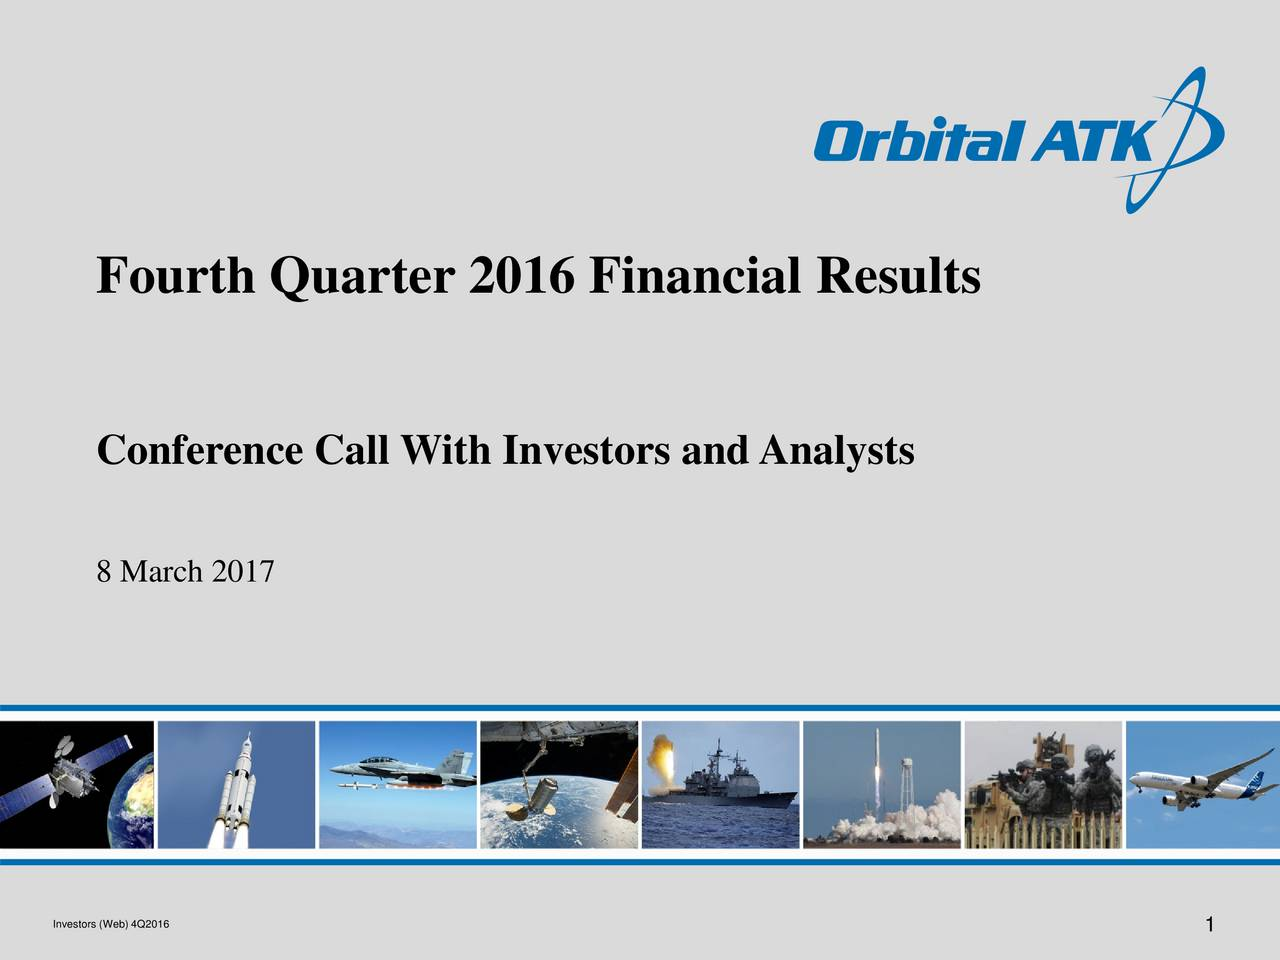 Conference Call With Investors and Analysts 8 March 2017 Investors (Web) 4Q2016 1